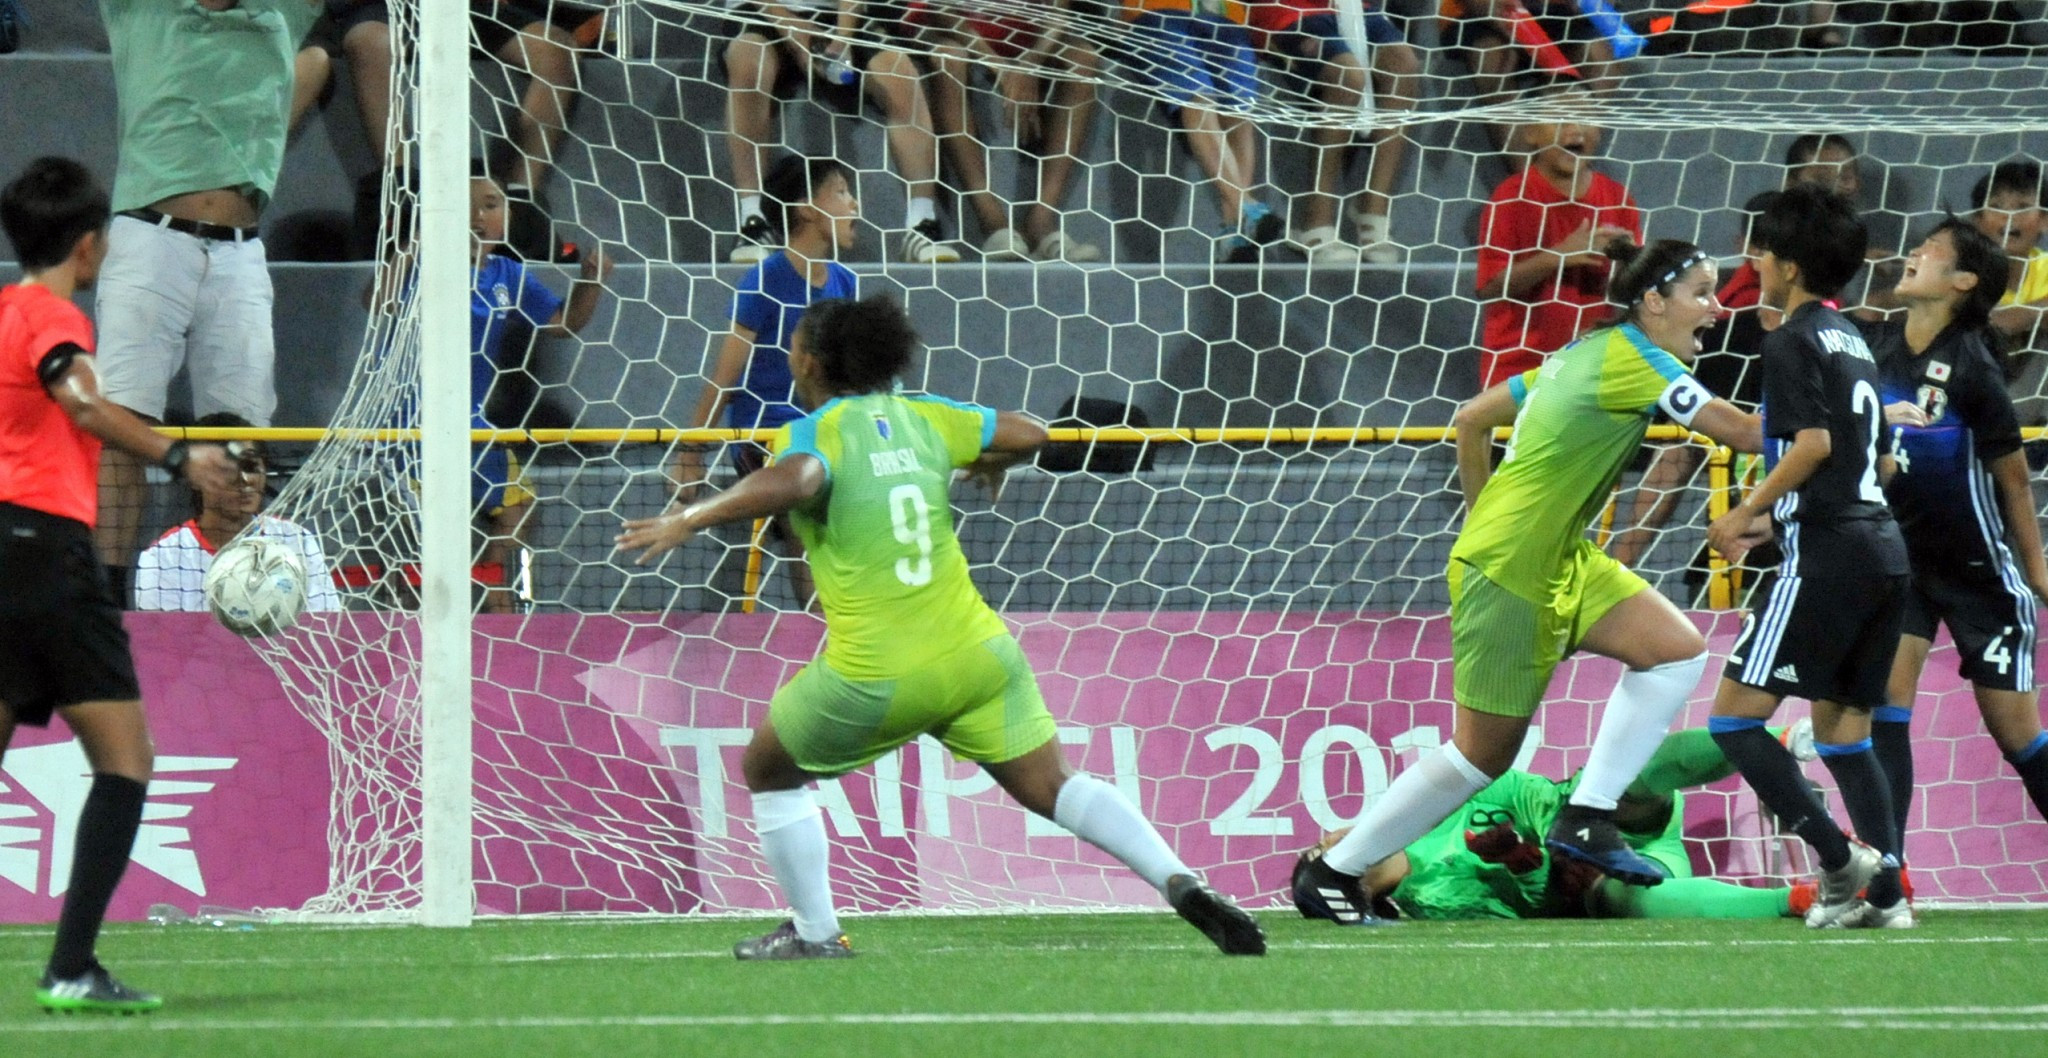 Diany Aparecida Martins scored the winner for Brazil in the 112th minute ©Taipei 2017